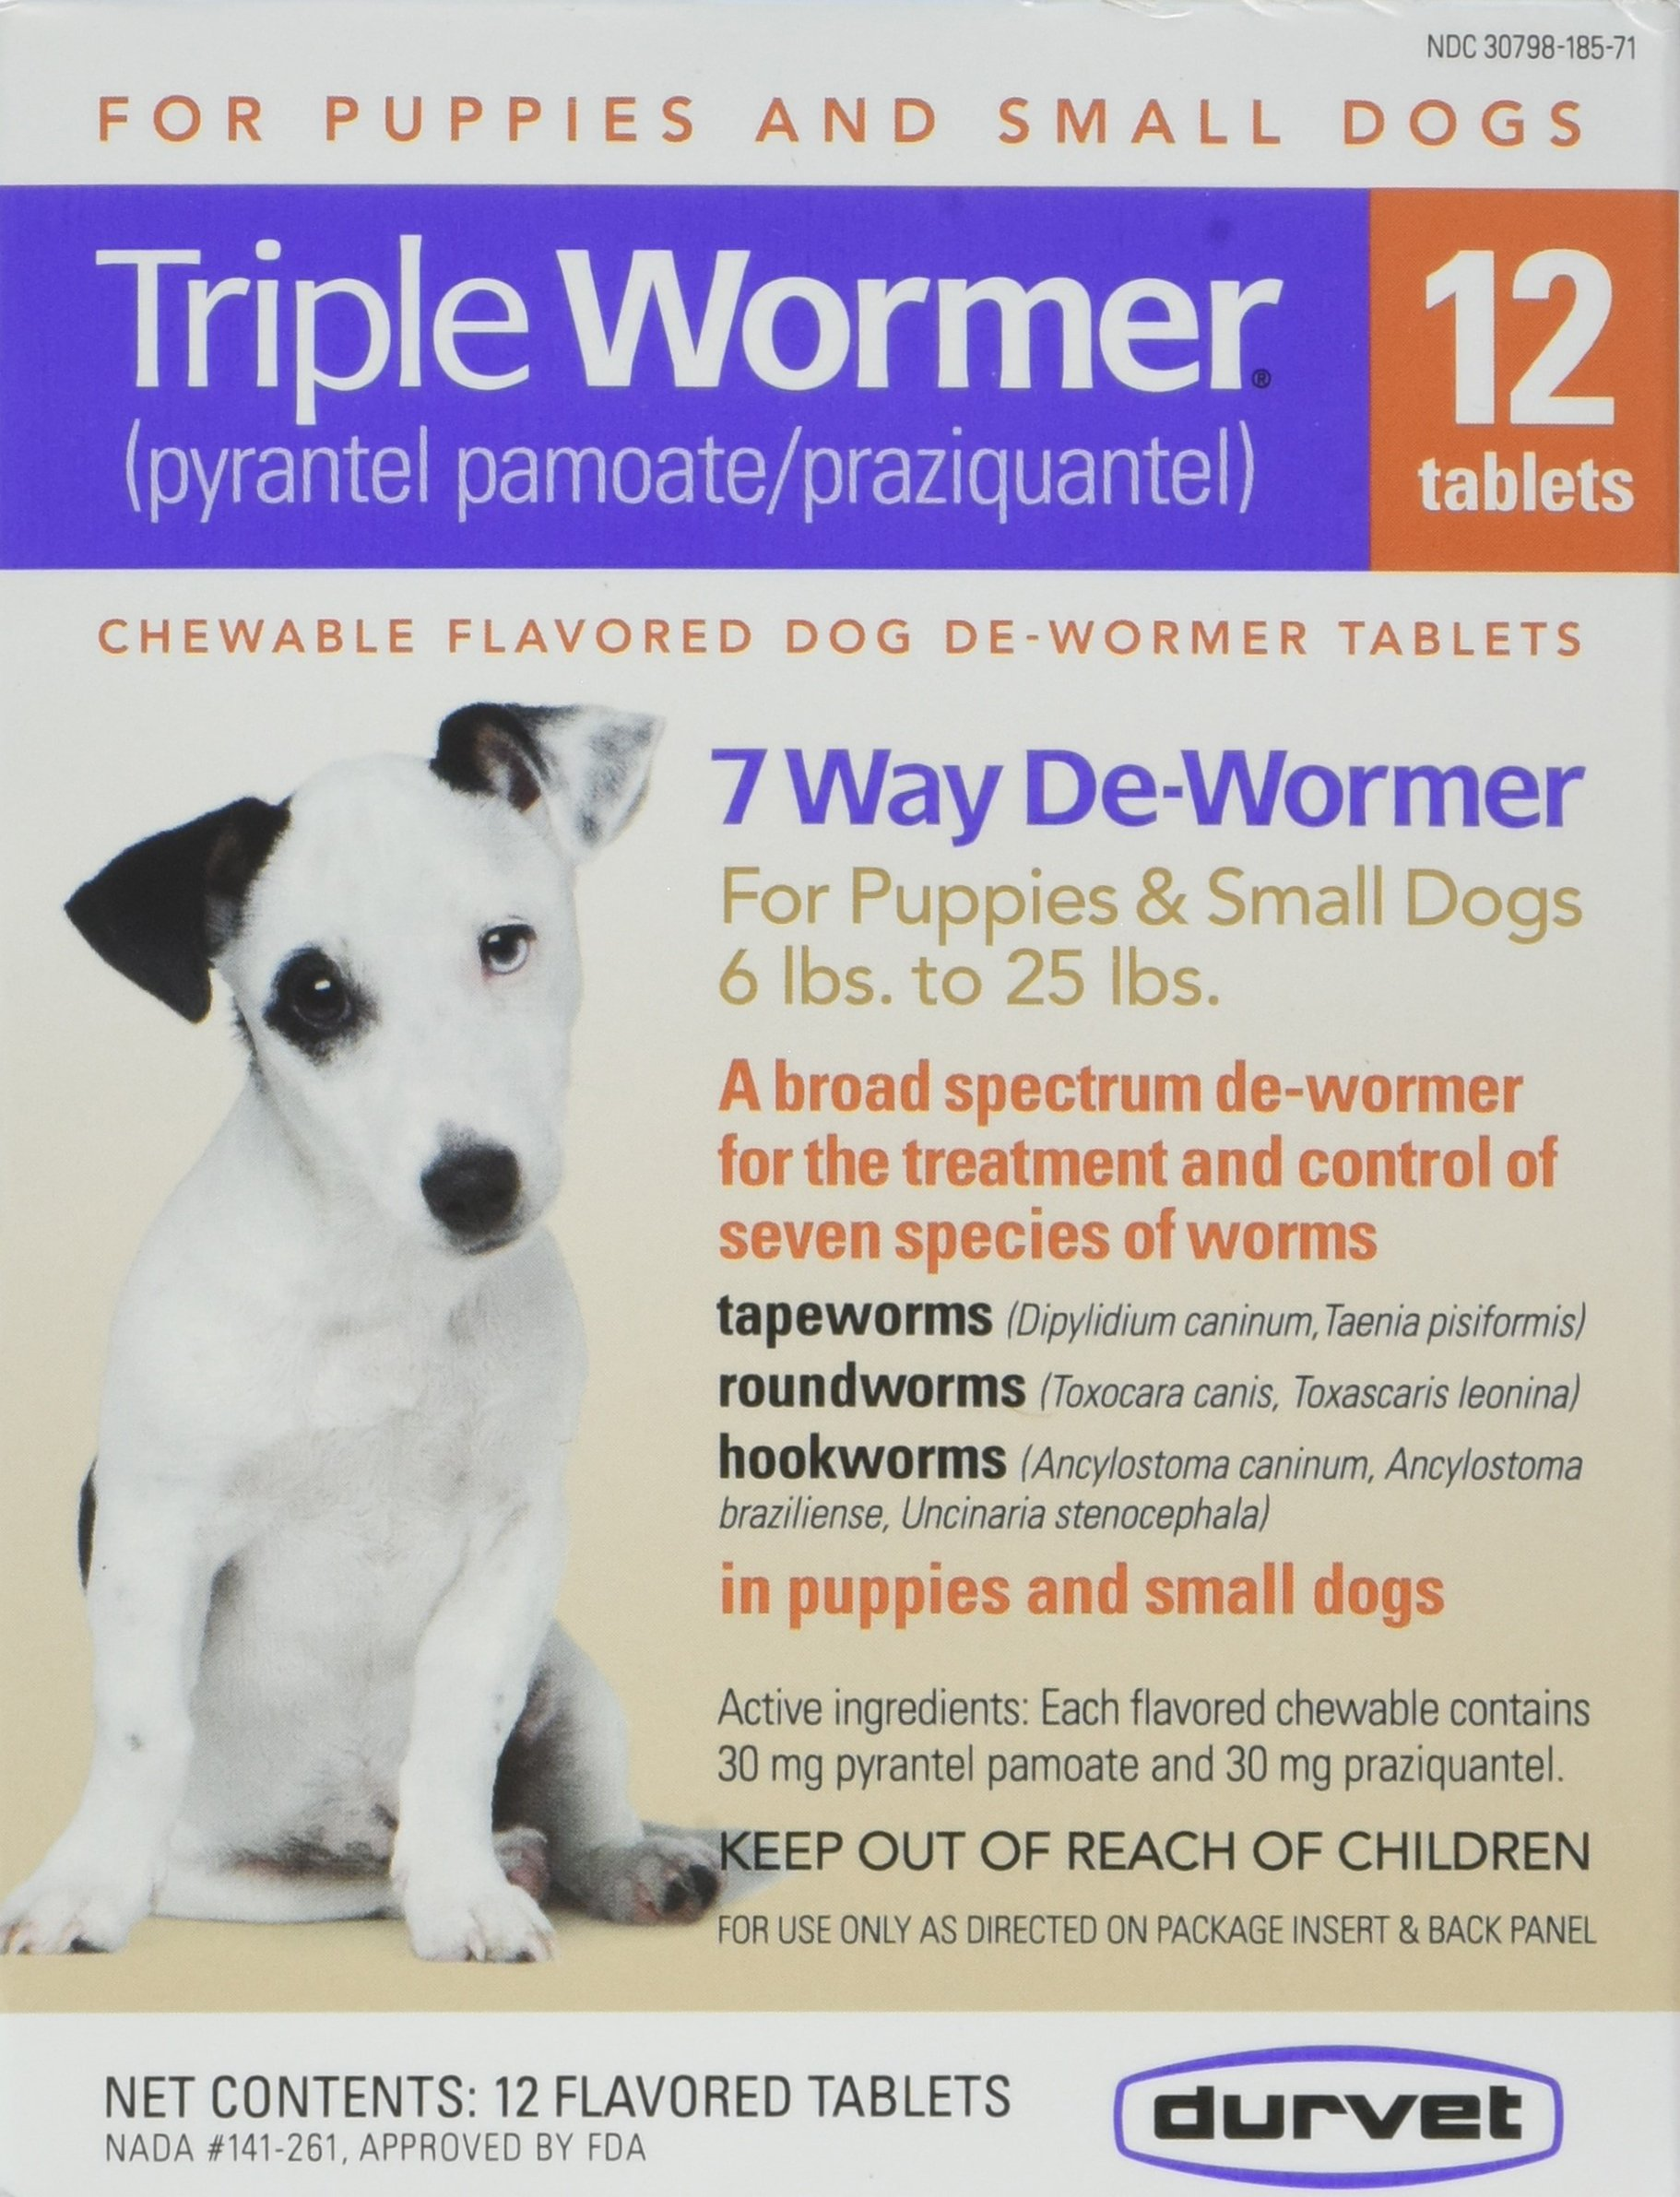 DURVET 12-Pack Triple Wormer Tablets for Puppies and Small Dogs by Durvet